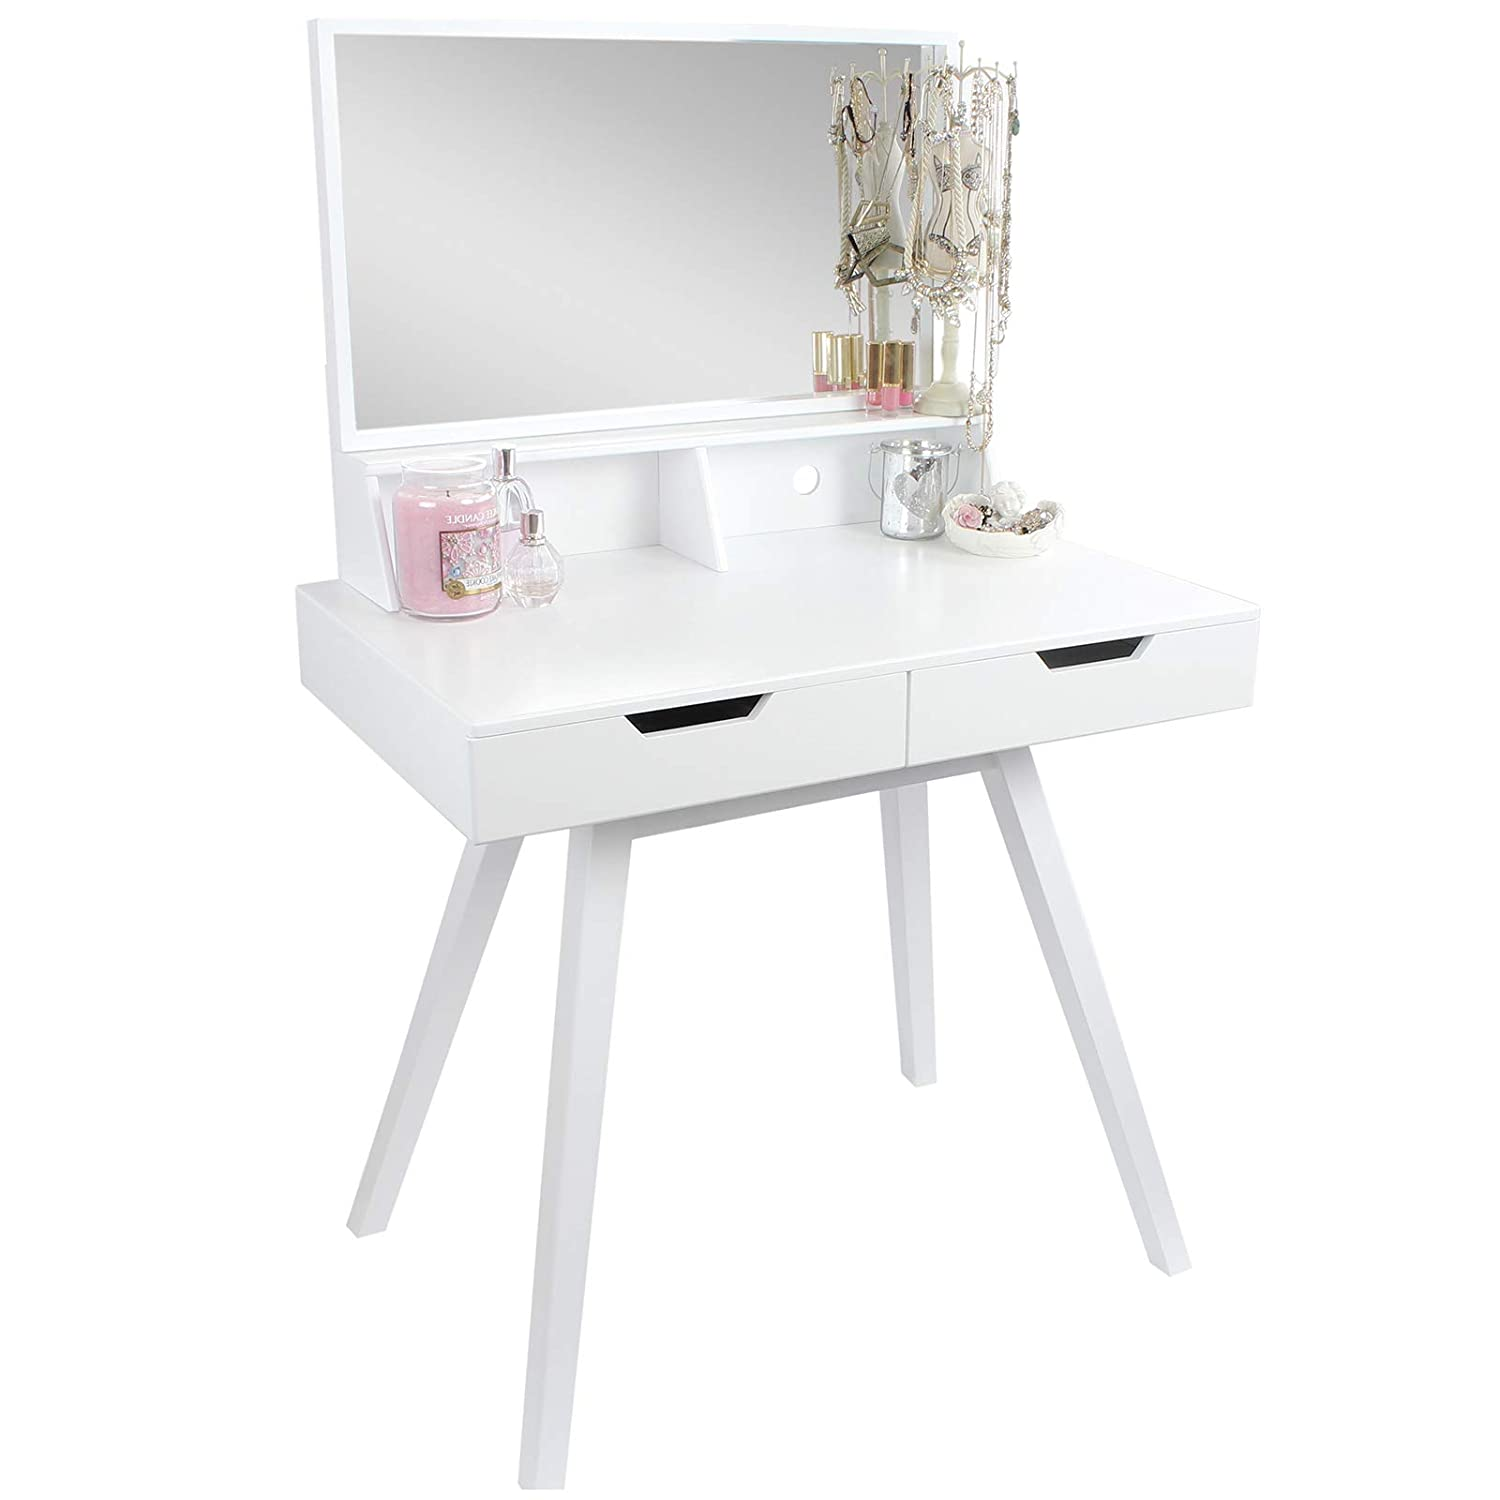 Modern White Vanity Makeup Dressing Table Desk With Large